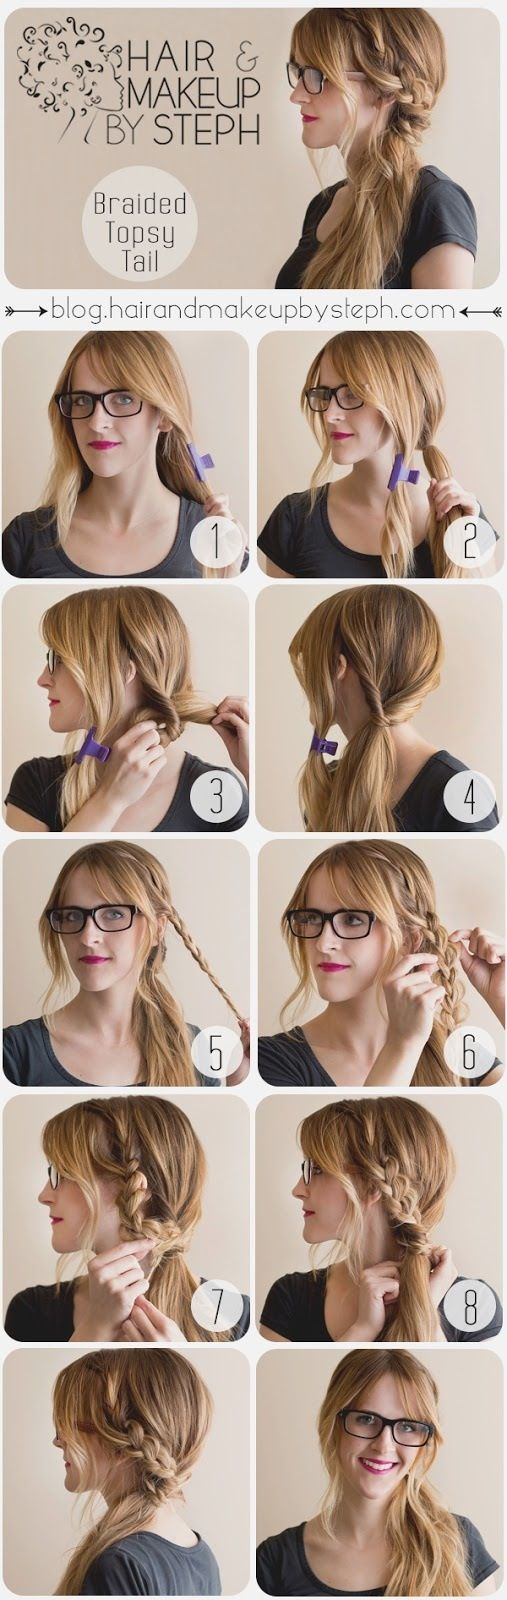 best my style images on pinterest braided updo fractals and